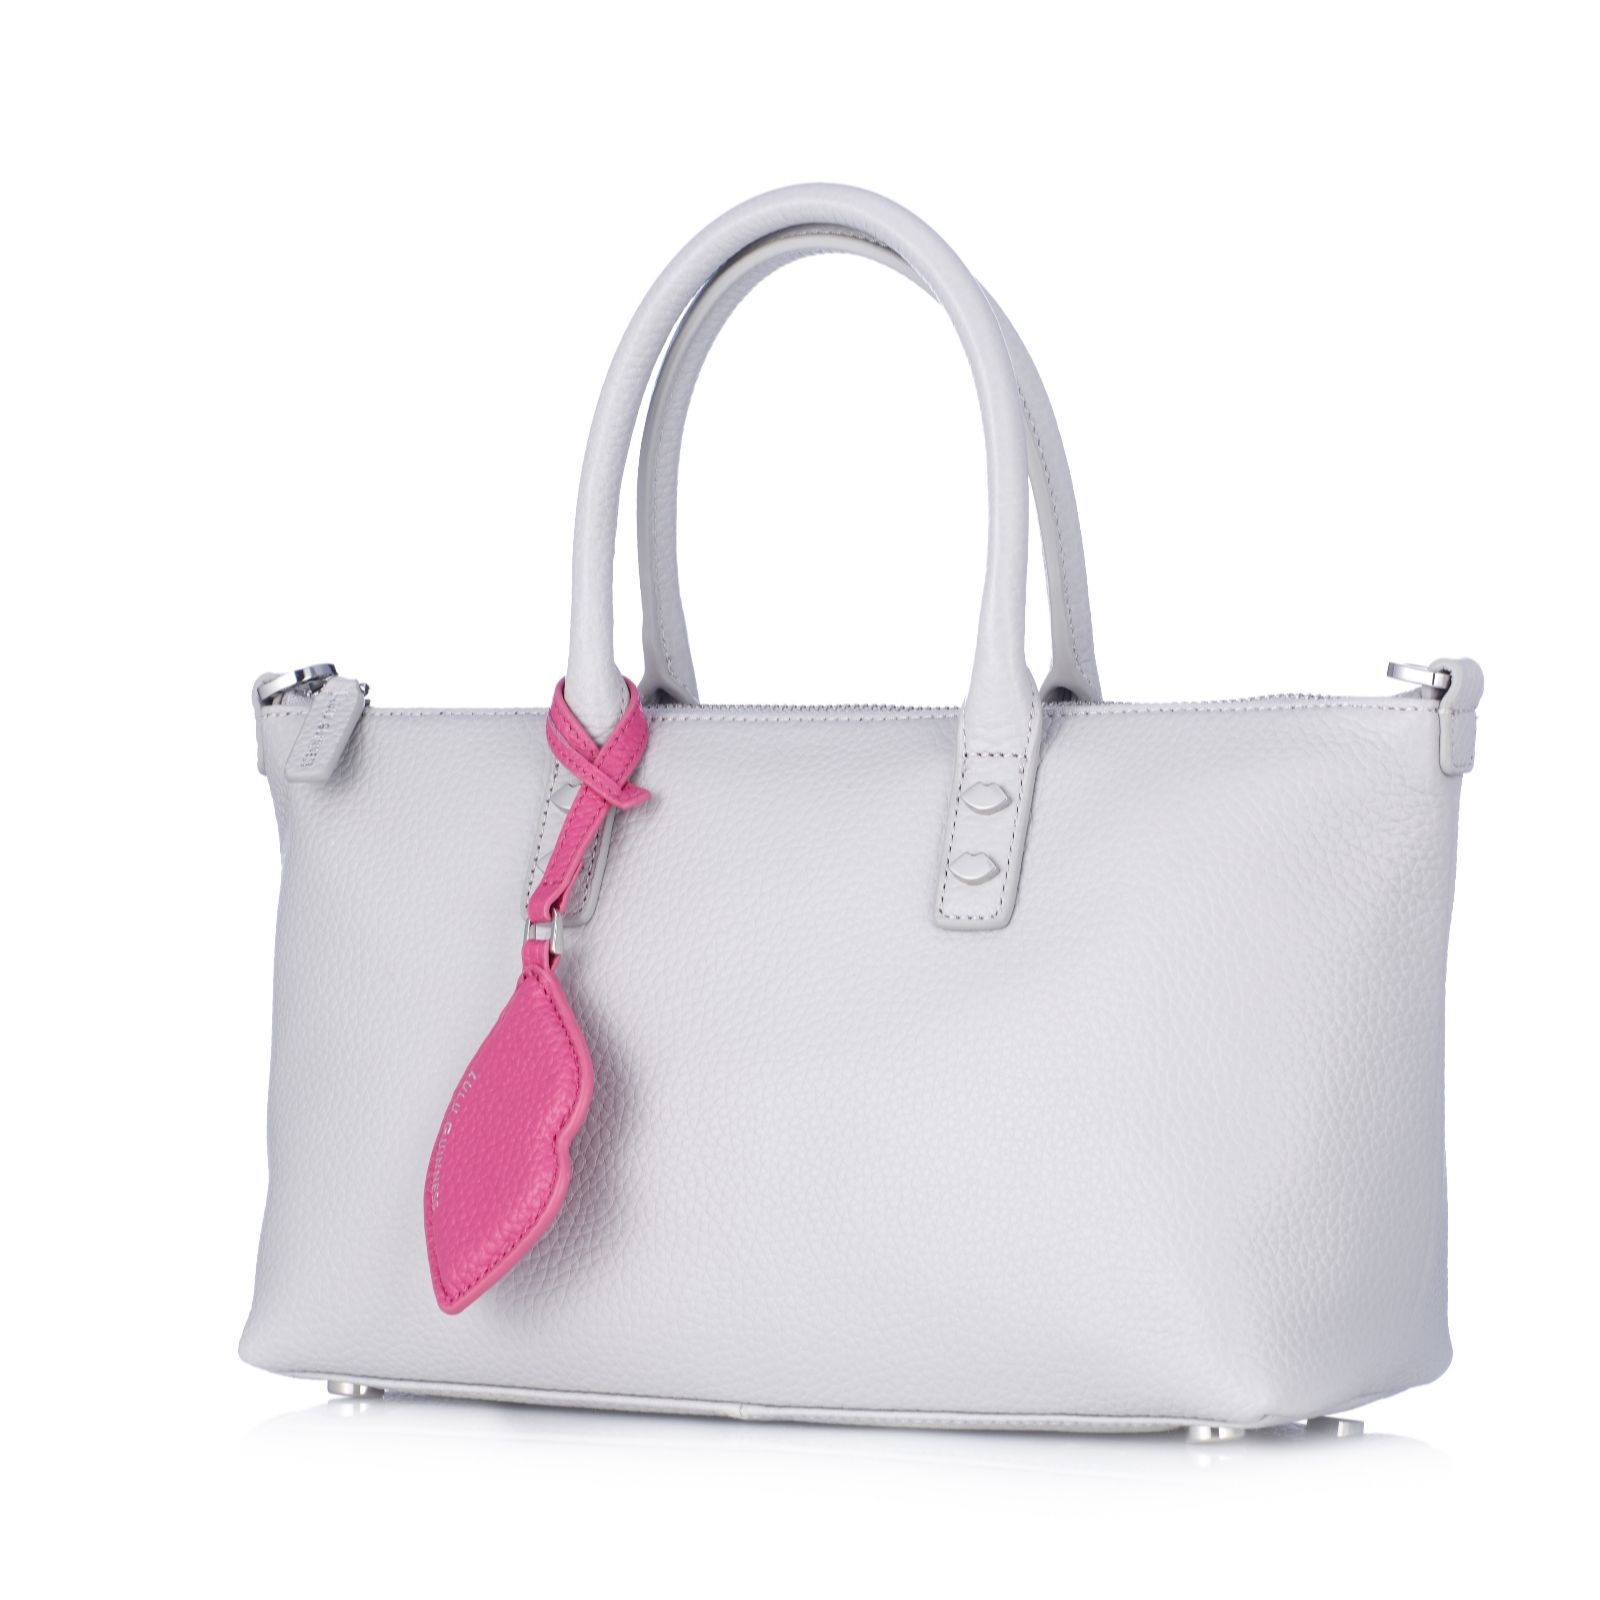 6ee43fd0e6 Lulu Guinness Small Frances Grainy Leather Tote Bag with Detachable Strap -  QVC UK